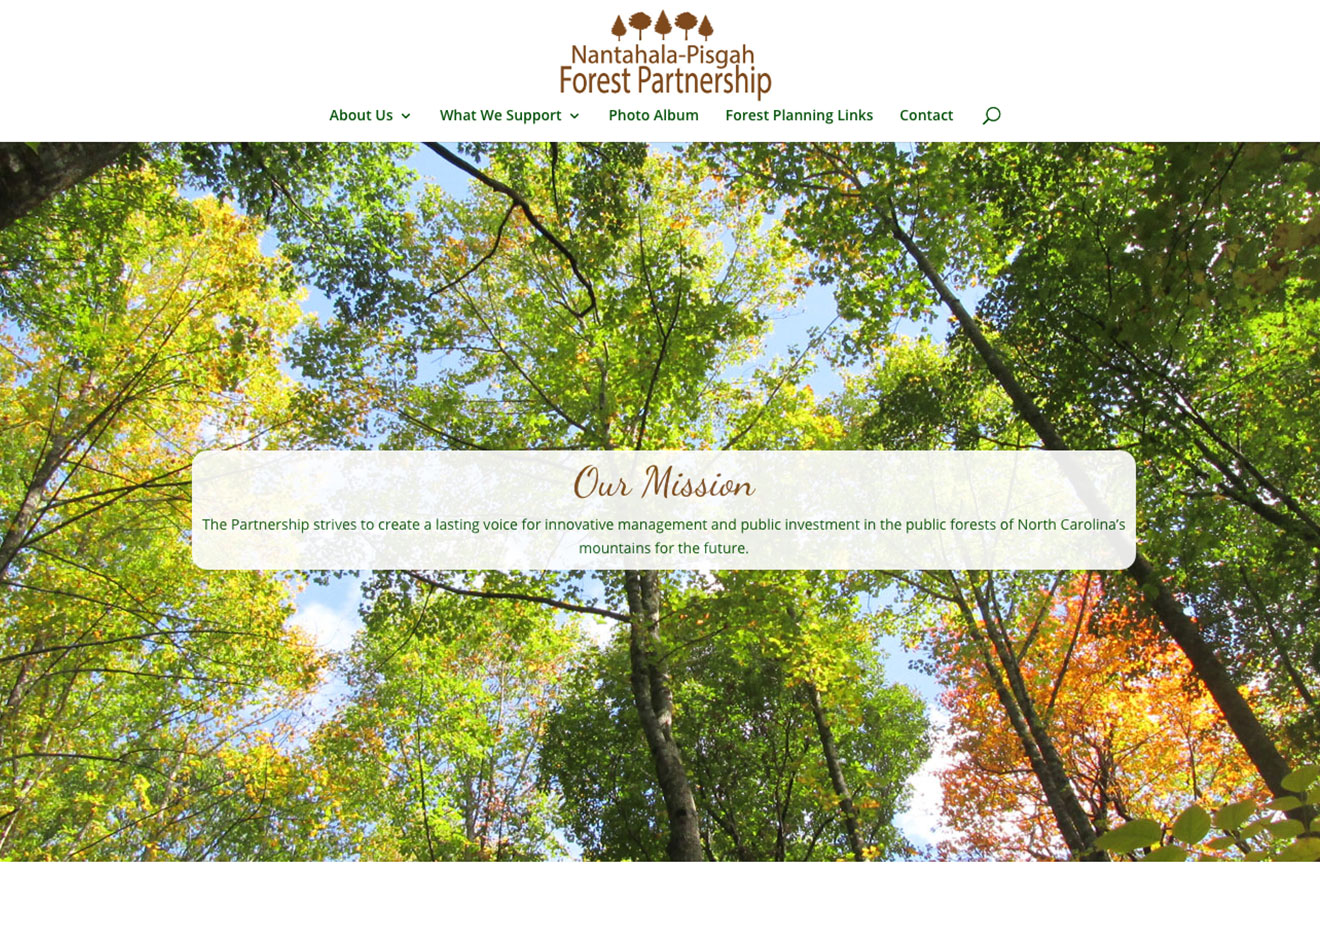 Screenshot of Nantahala Pisgah Forest Partnership home page